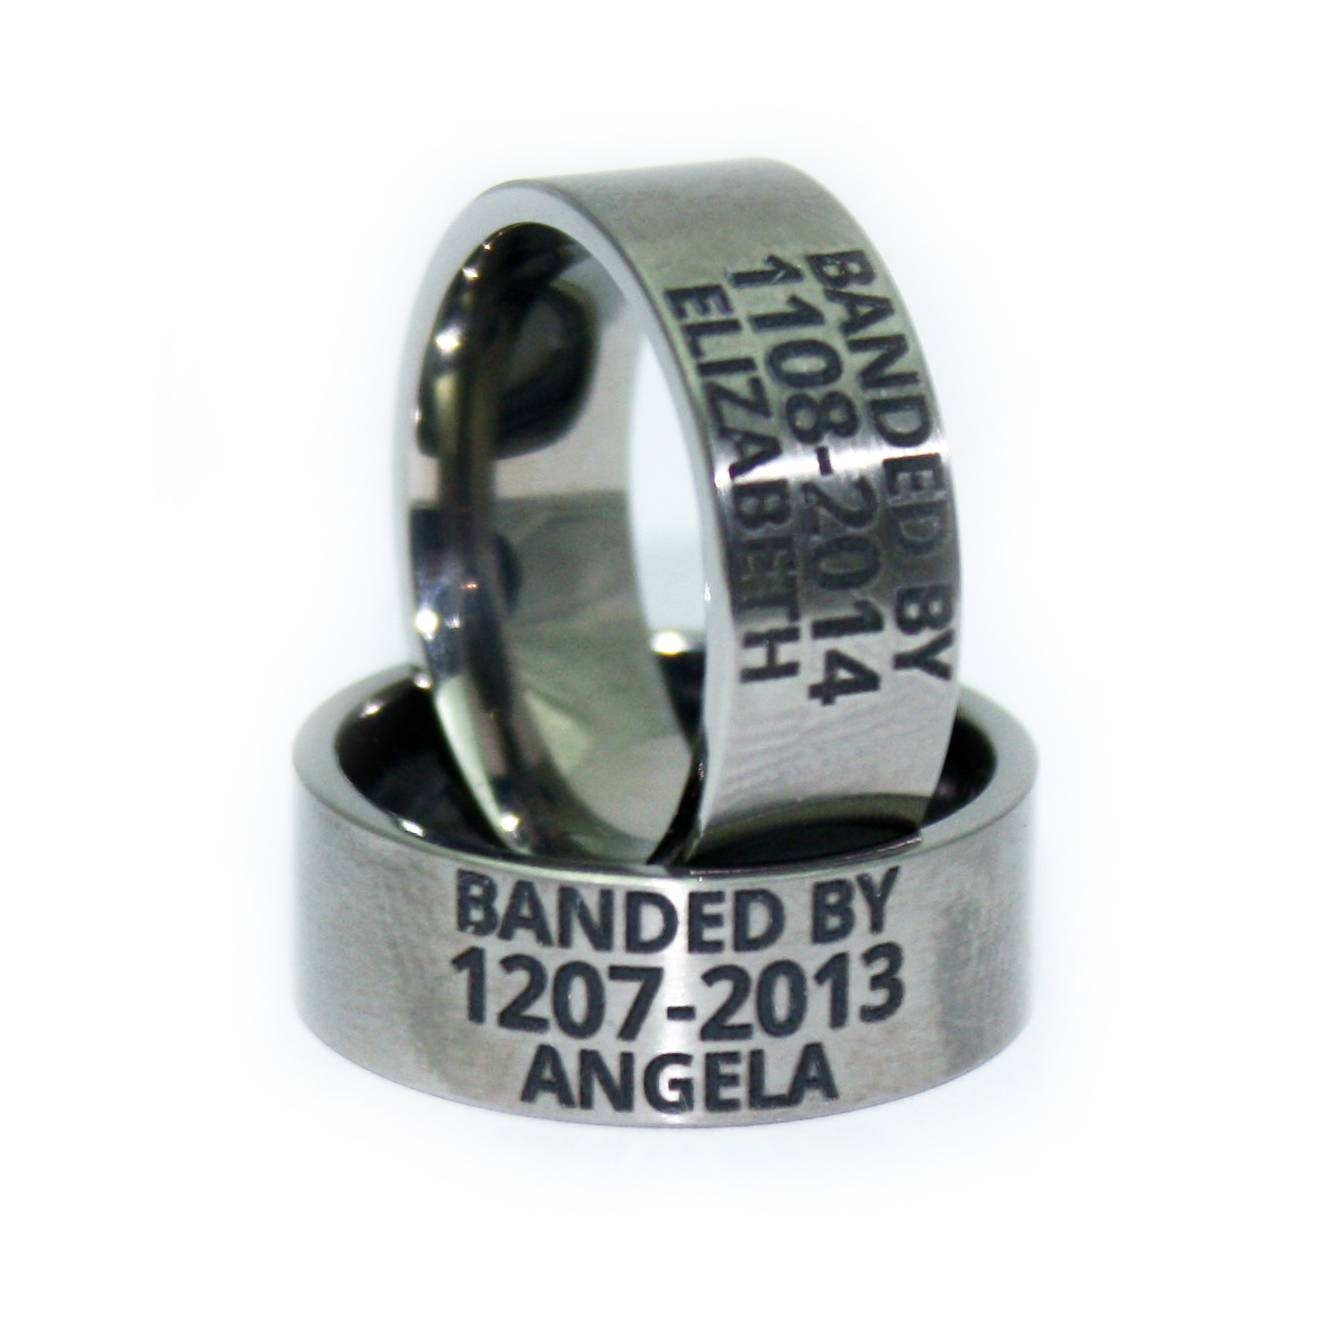 Duck Band – Custom Laser Engraved Wedding Ring Intended For Men's Hunting Wedding Bands (View 6 of 15)